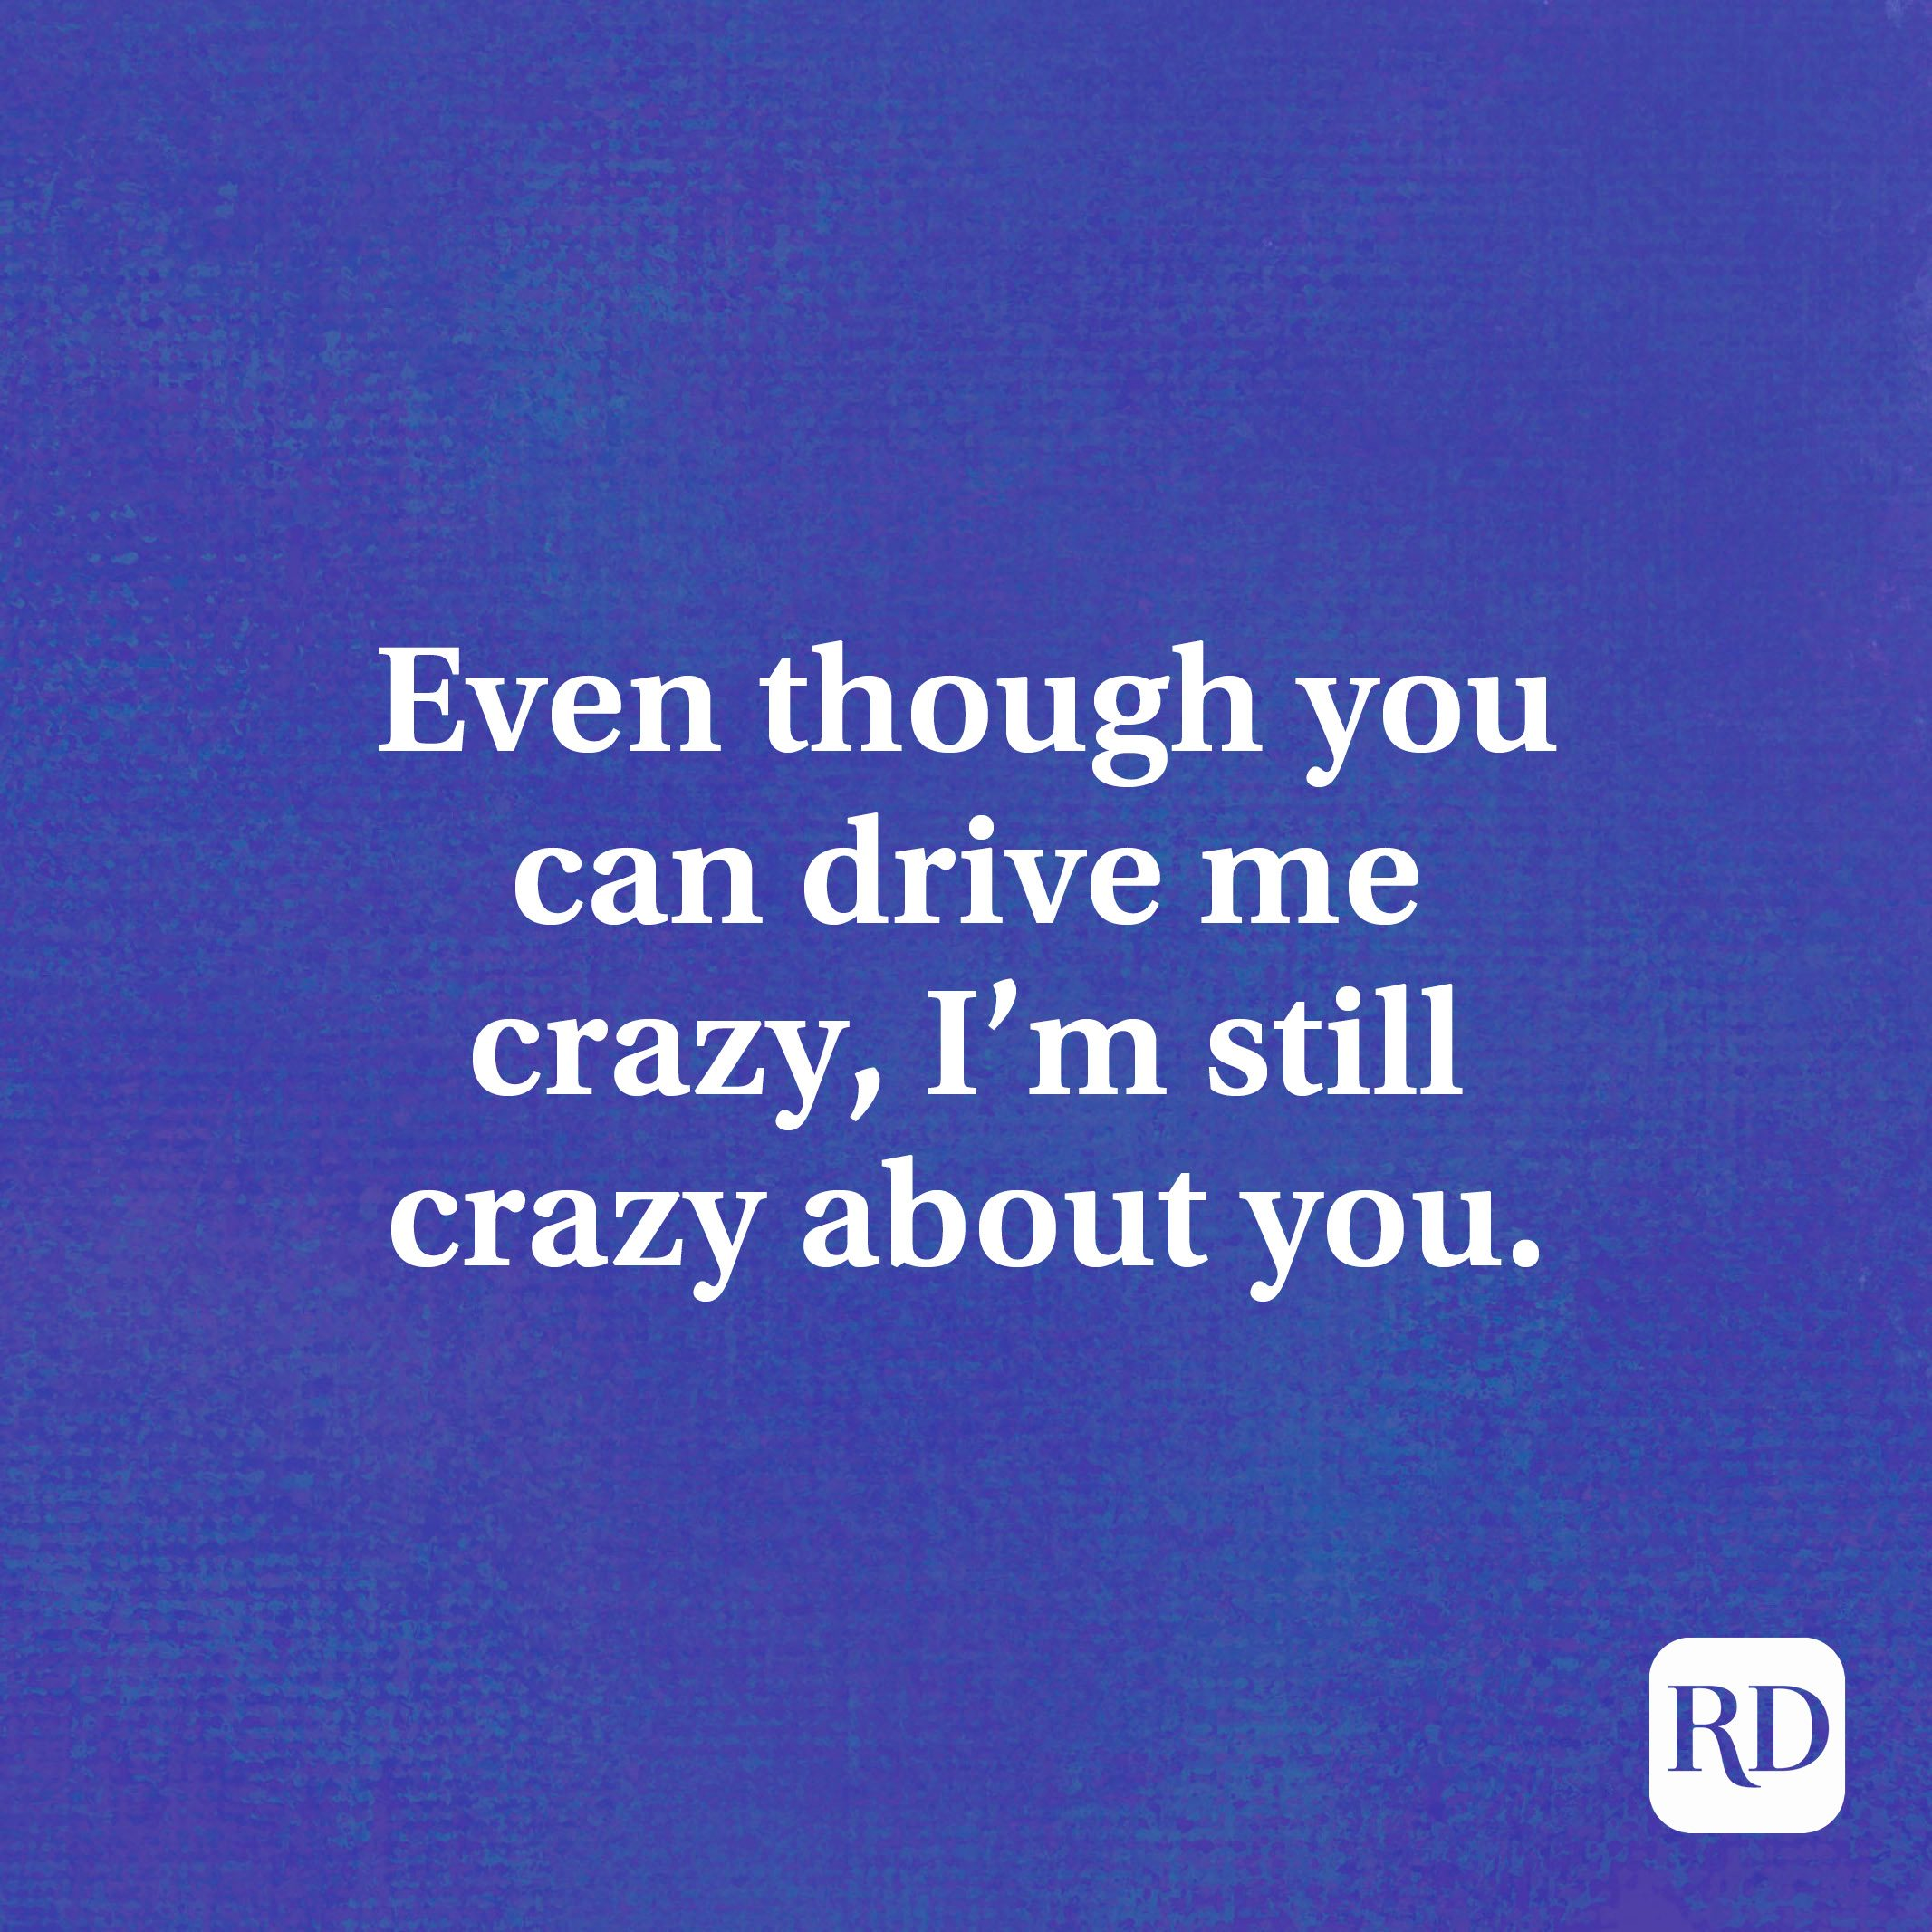 Even though you can drive me crazy, I'm still crazy about you.